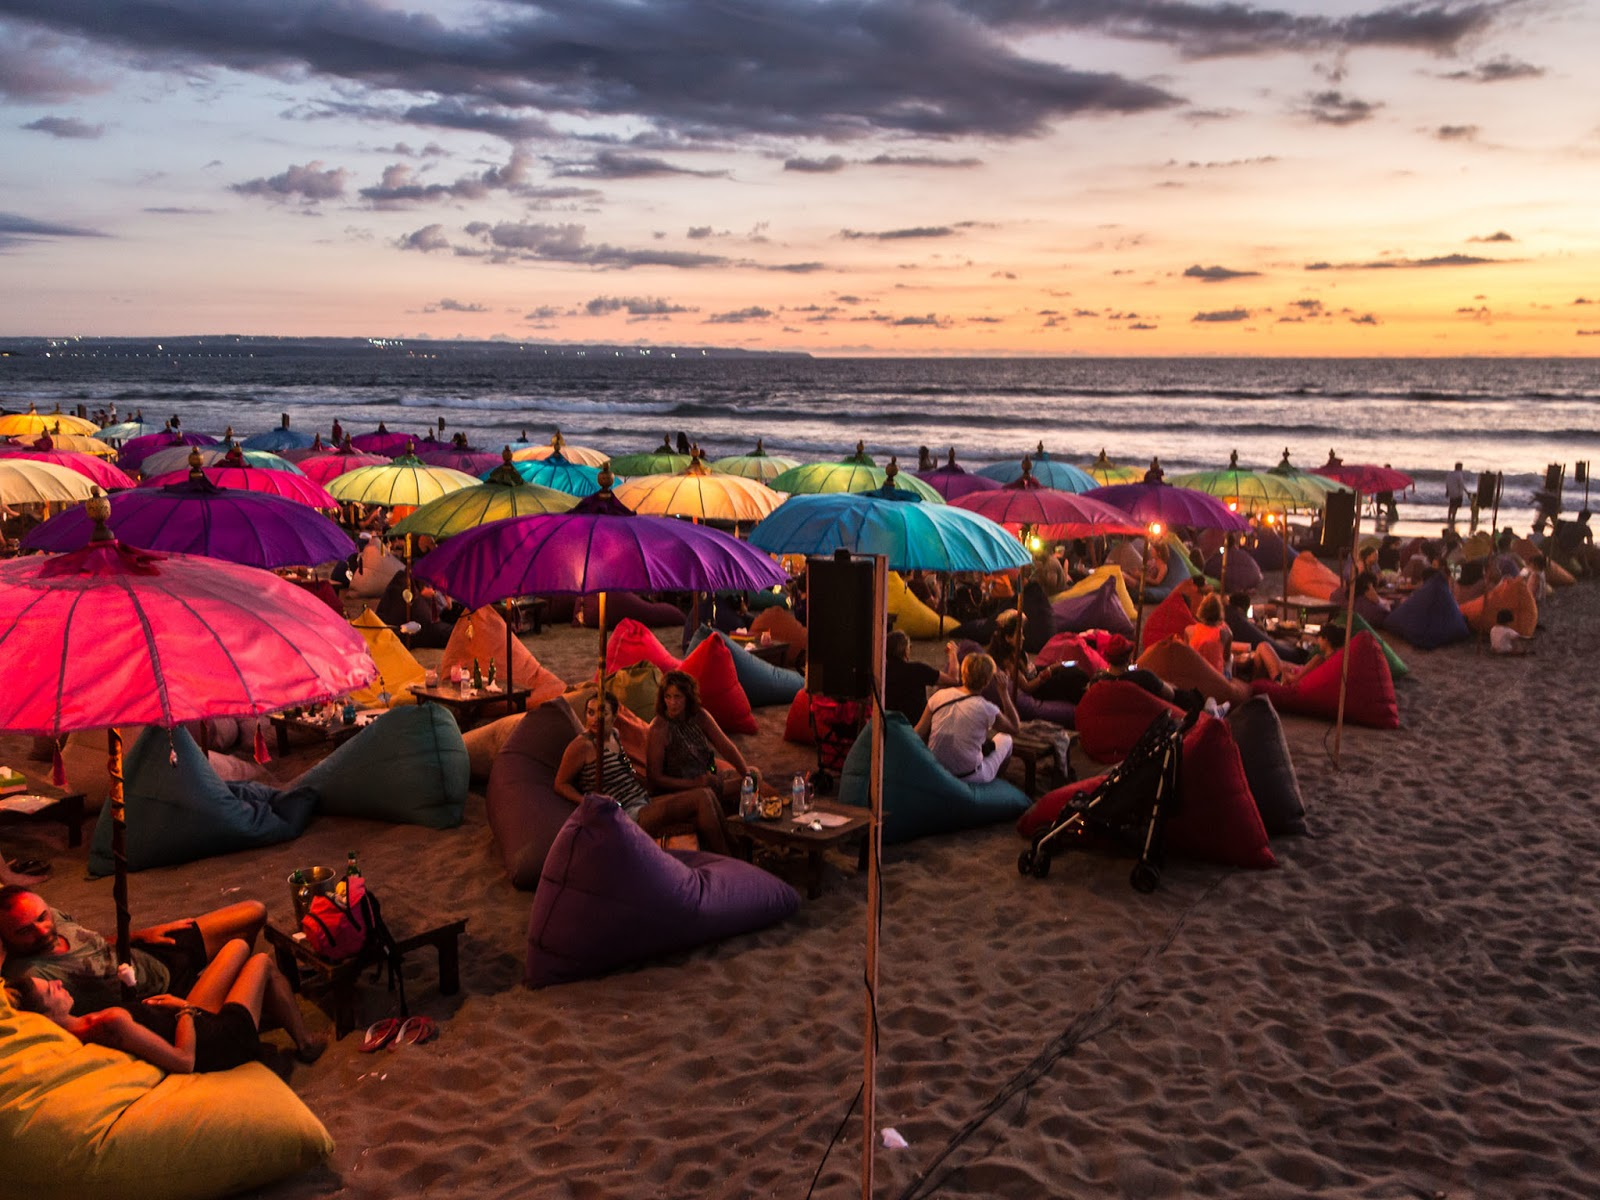 Bali 2021 | Ultimate Guide To Where To Go, Eat & Sleep in Bali | Time Out